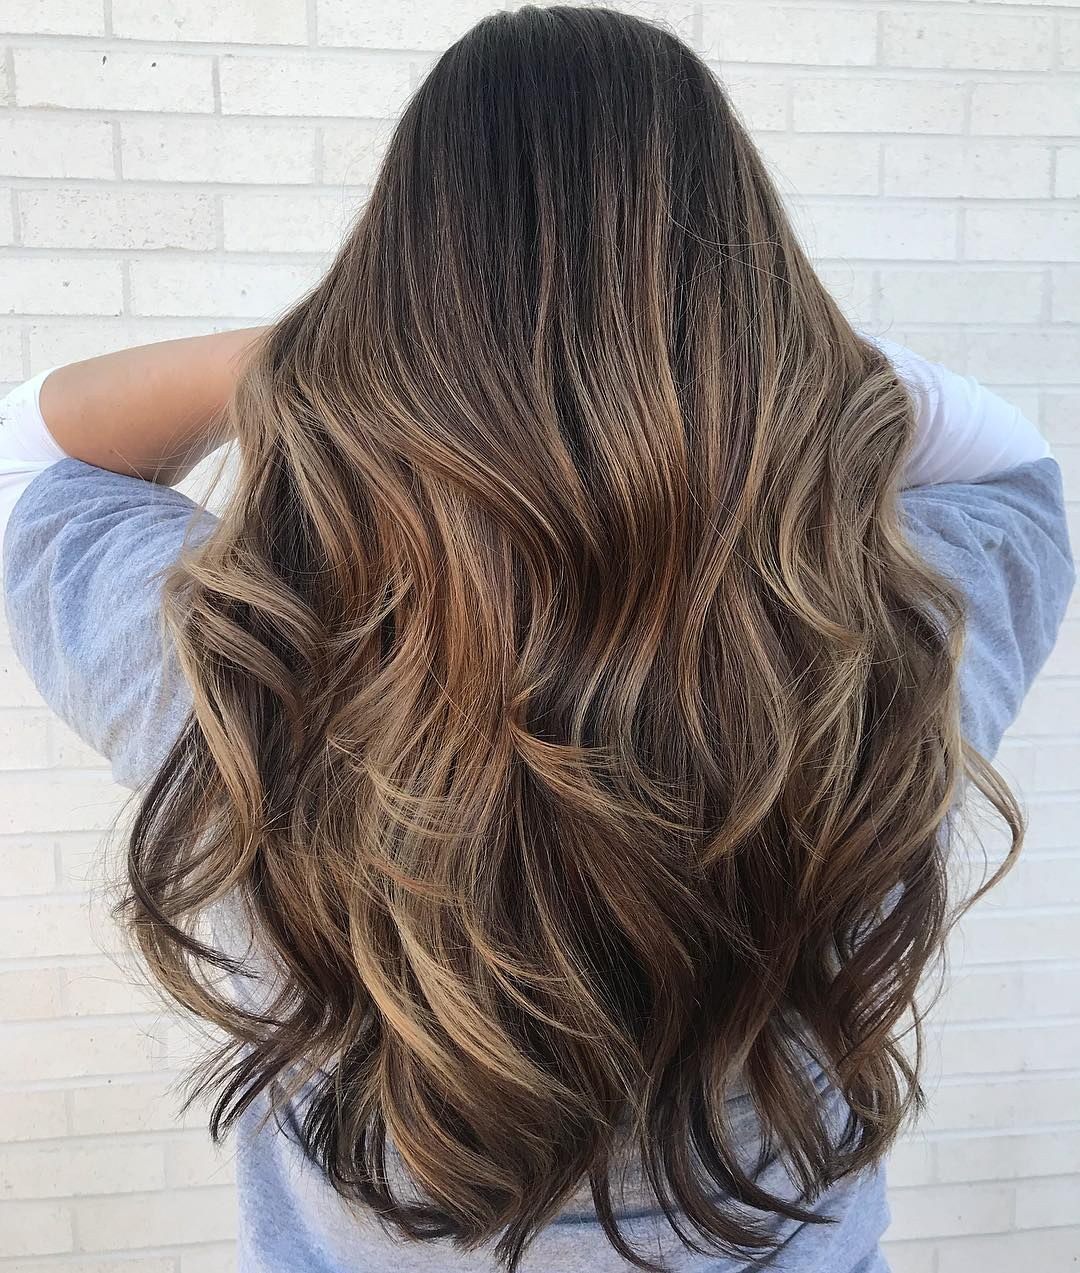 Waist-Length Wavy Brown Balayage Hair